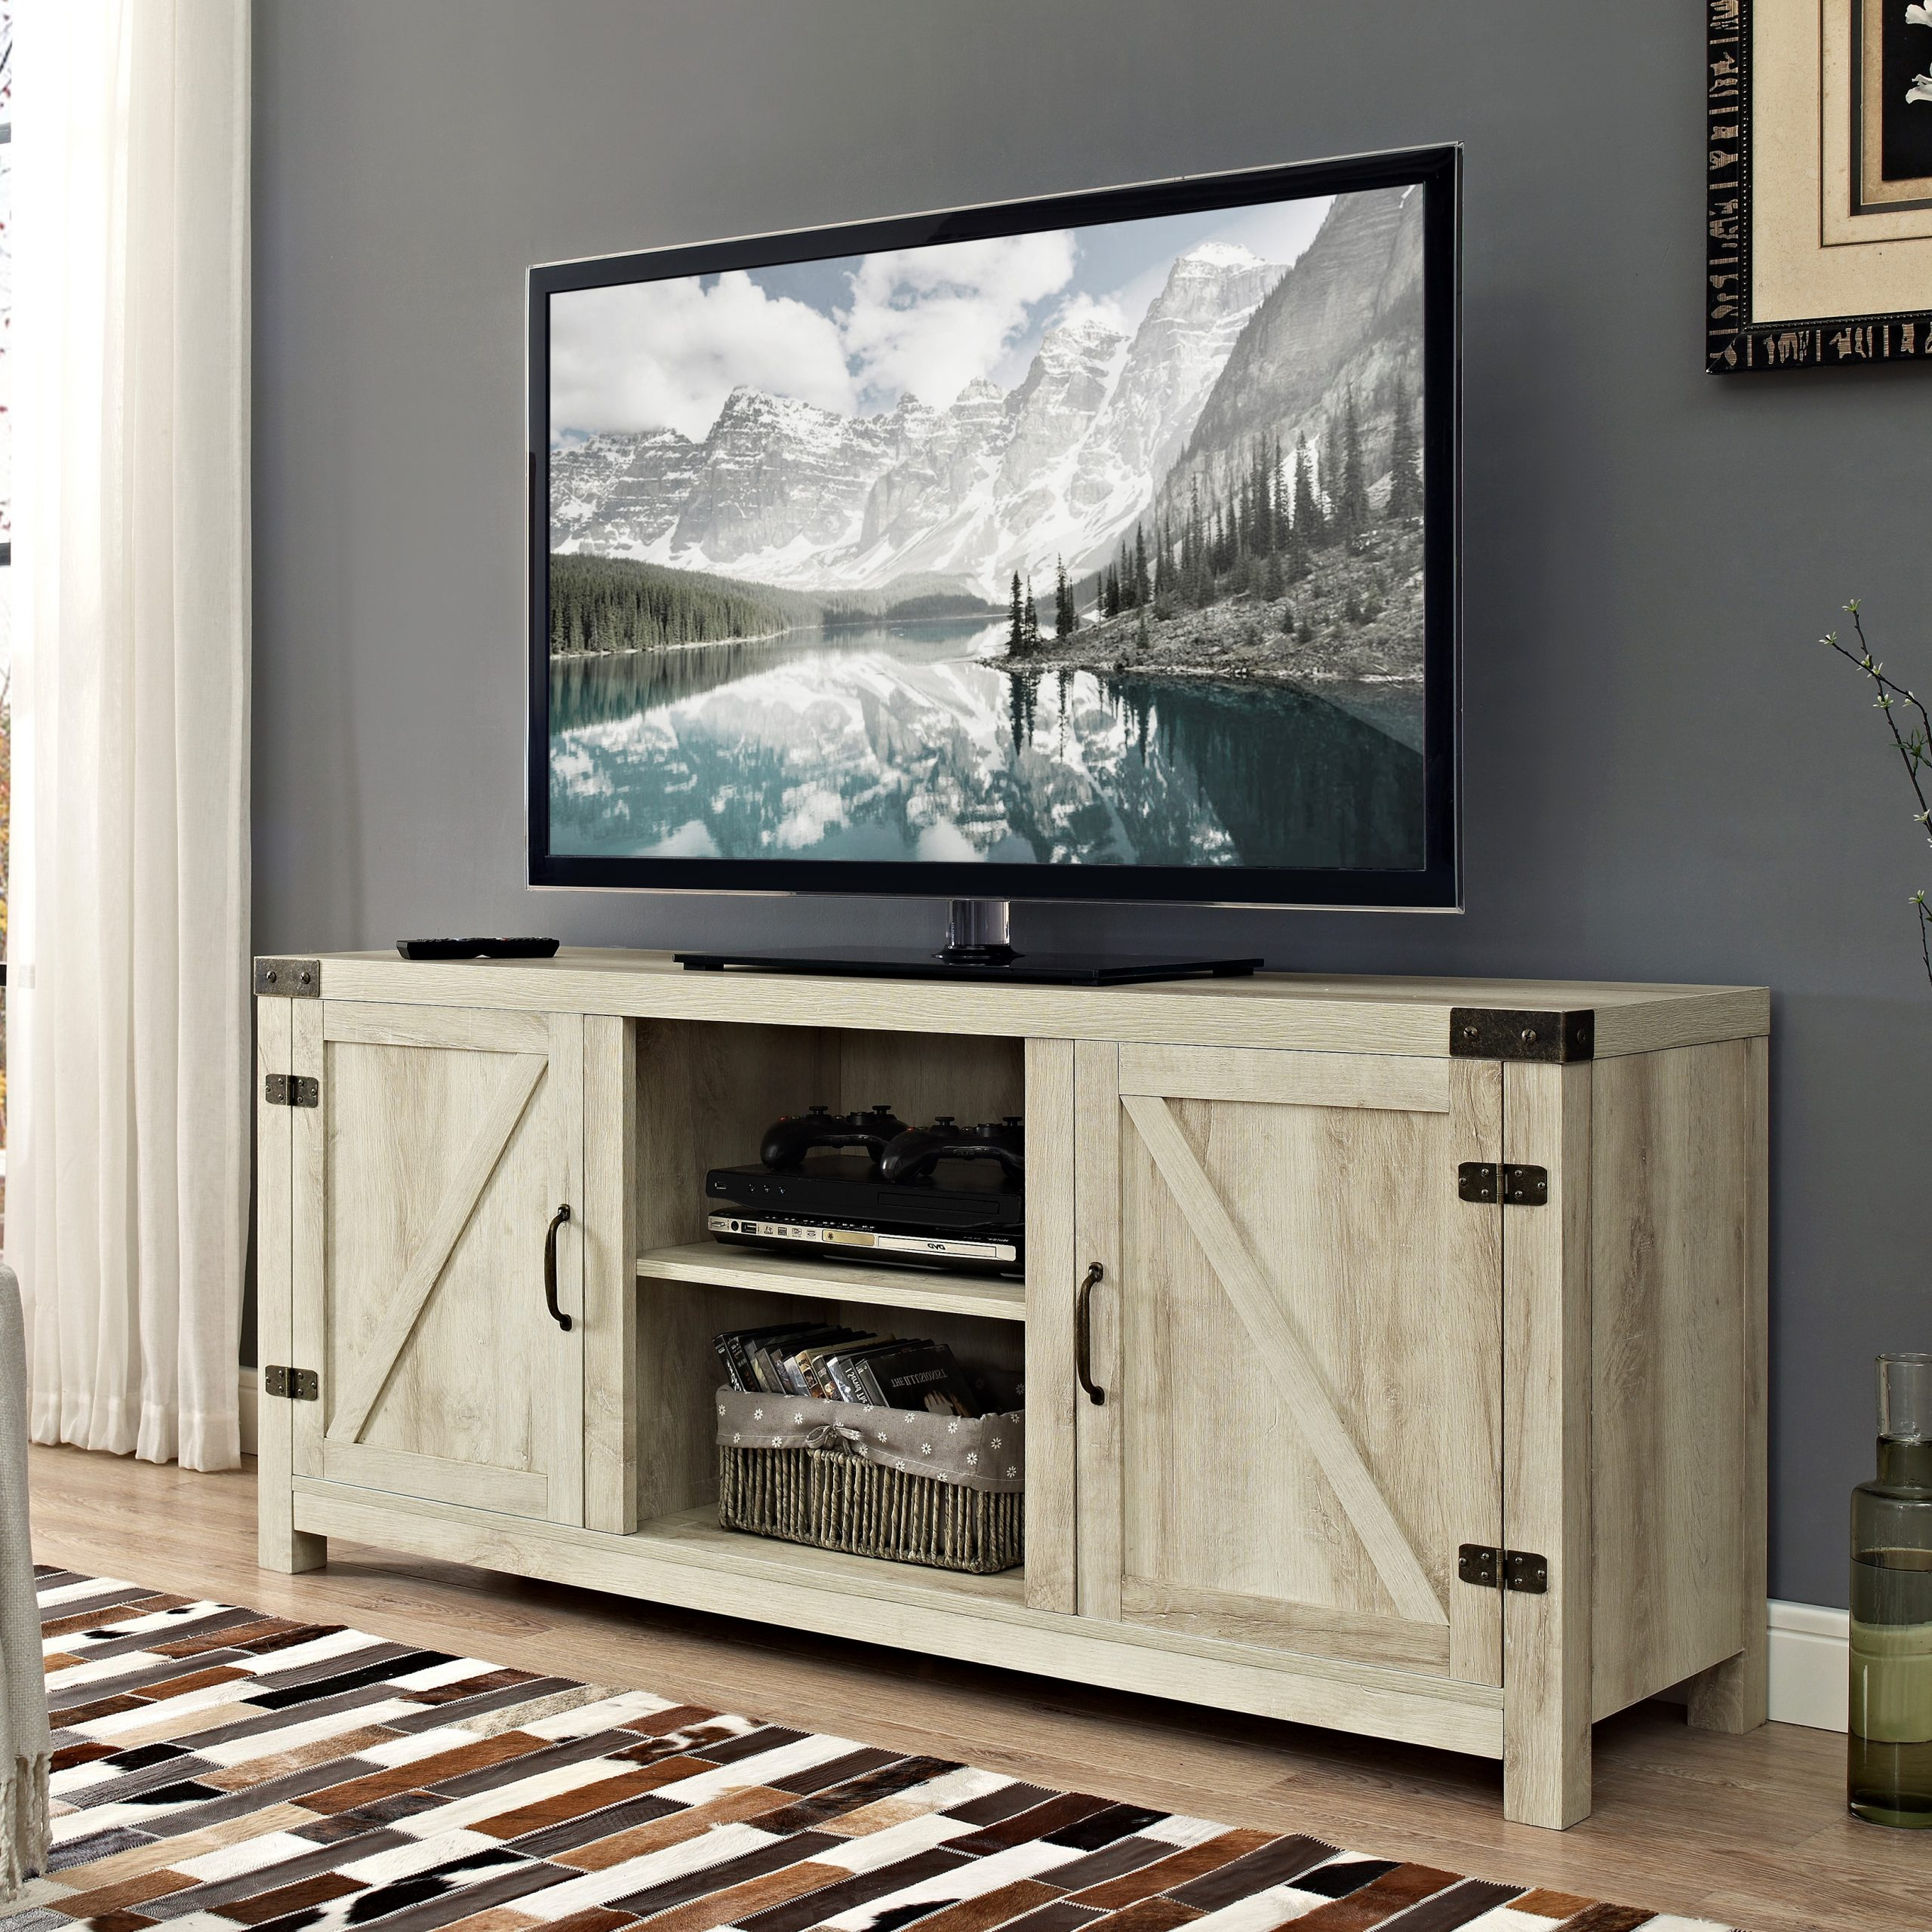 """Favorite Caleah Tv Stands For Tvs Up To 65"""" For Woven Paths Modern Farmhouse Barn Door Tv Stand For Tvs Up (View 10 of 25)"""